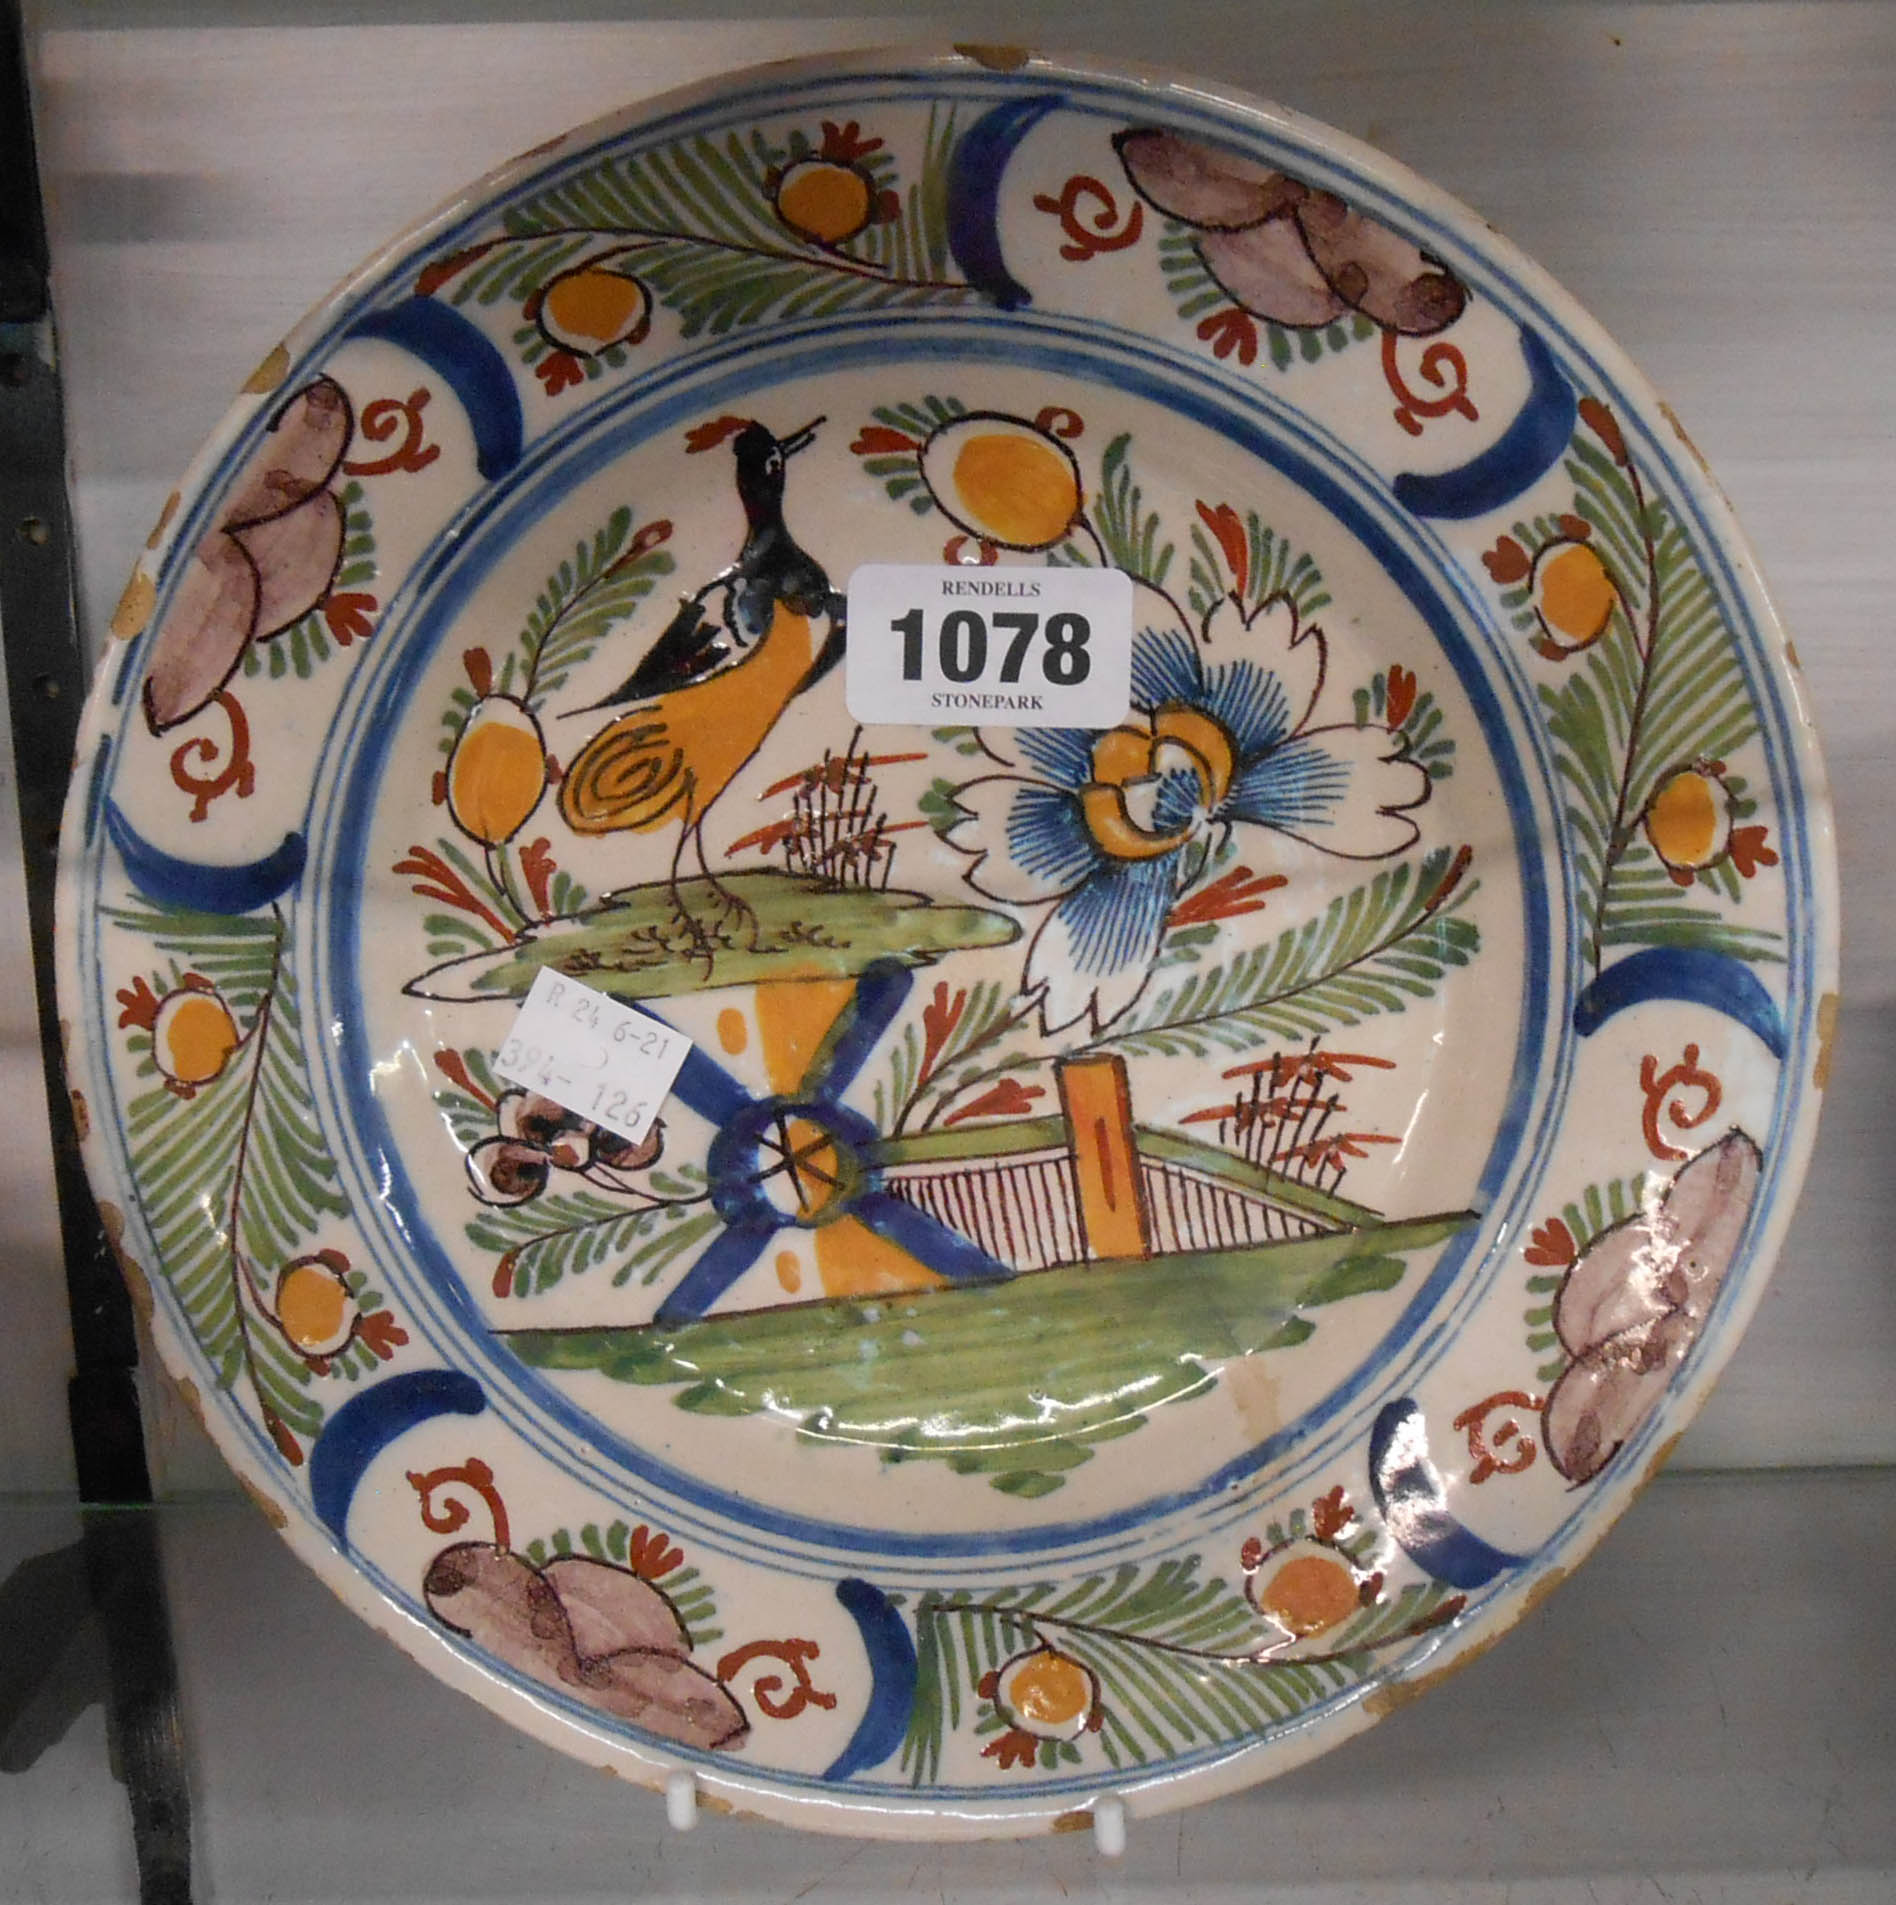 An 18th Century Bristol Delftware plate, depicting a bird sitting on a fence - old restoration